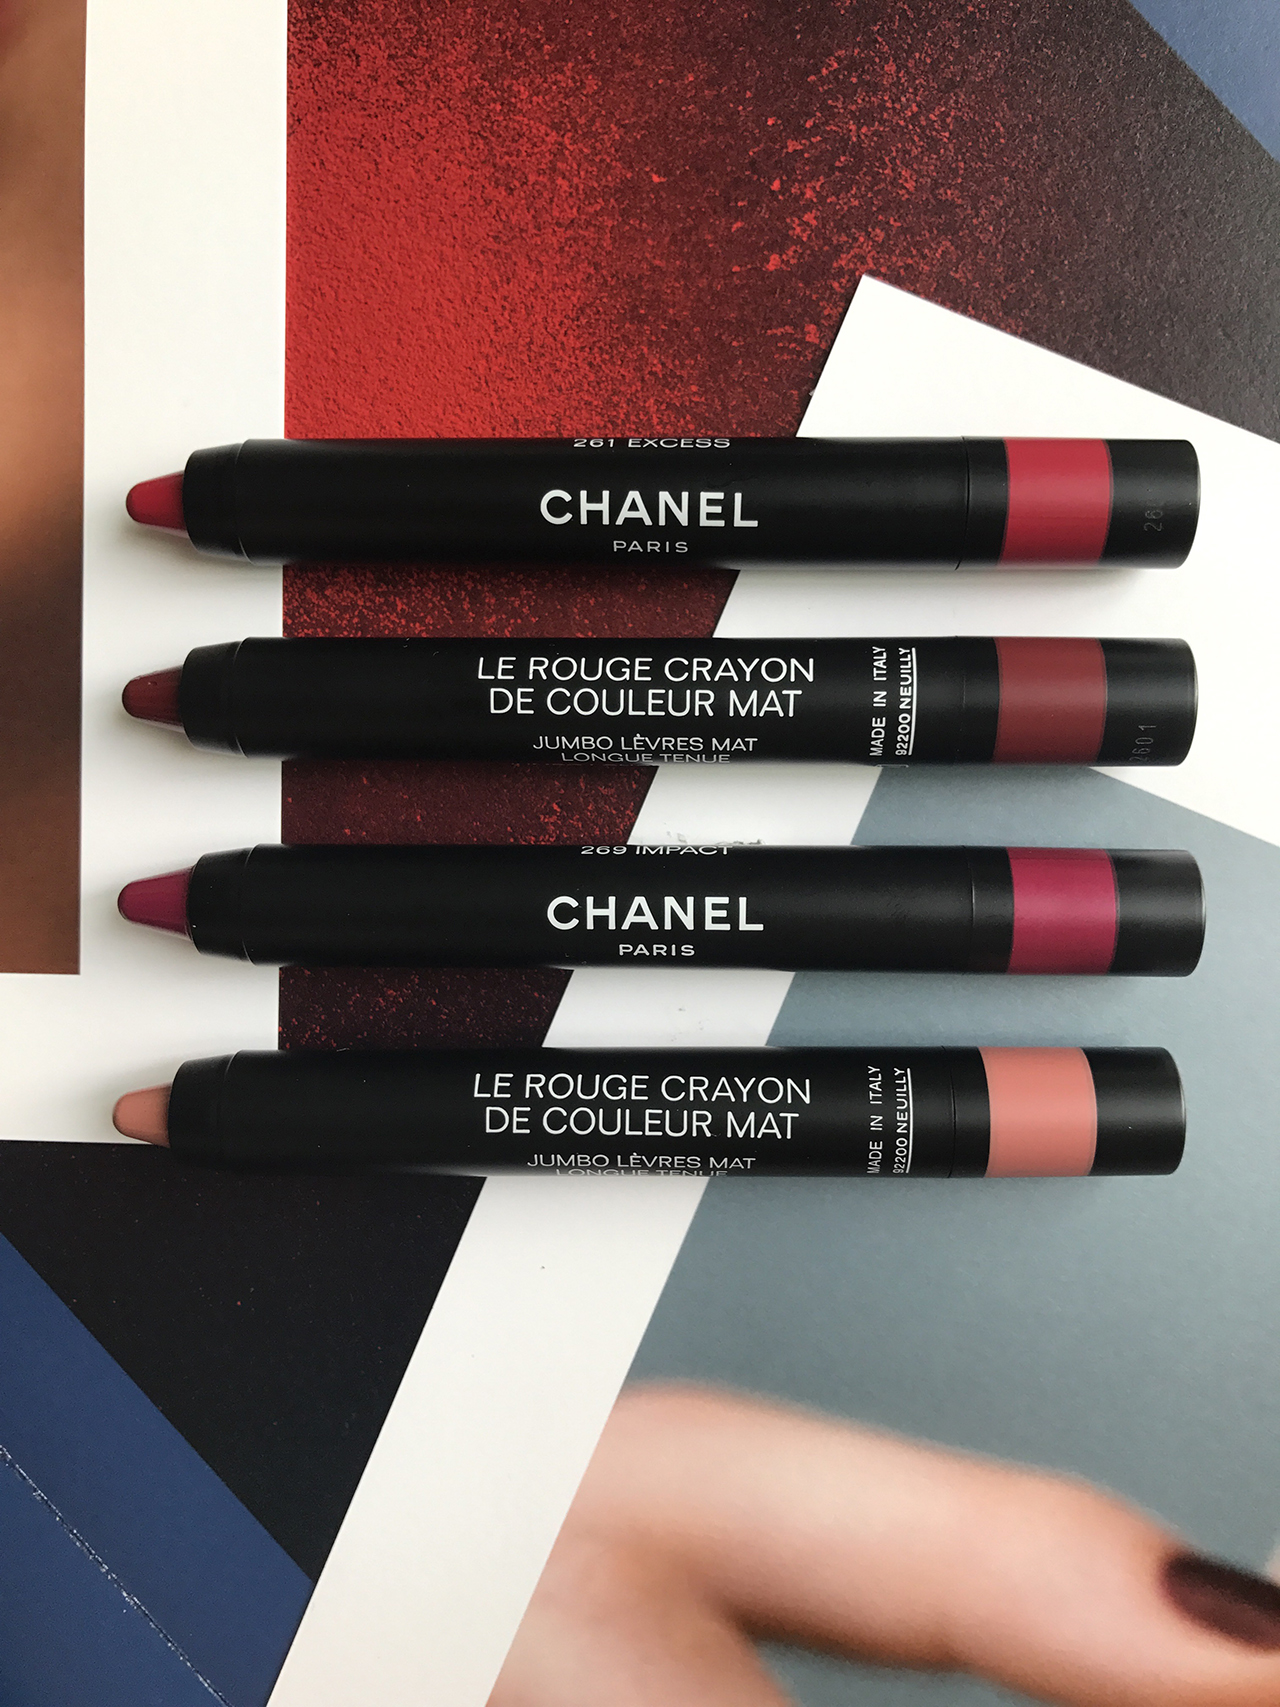 Chanel Le Rouge Crayon de Couleur Mat